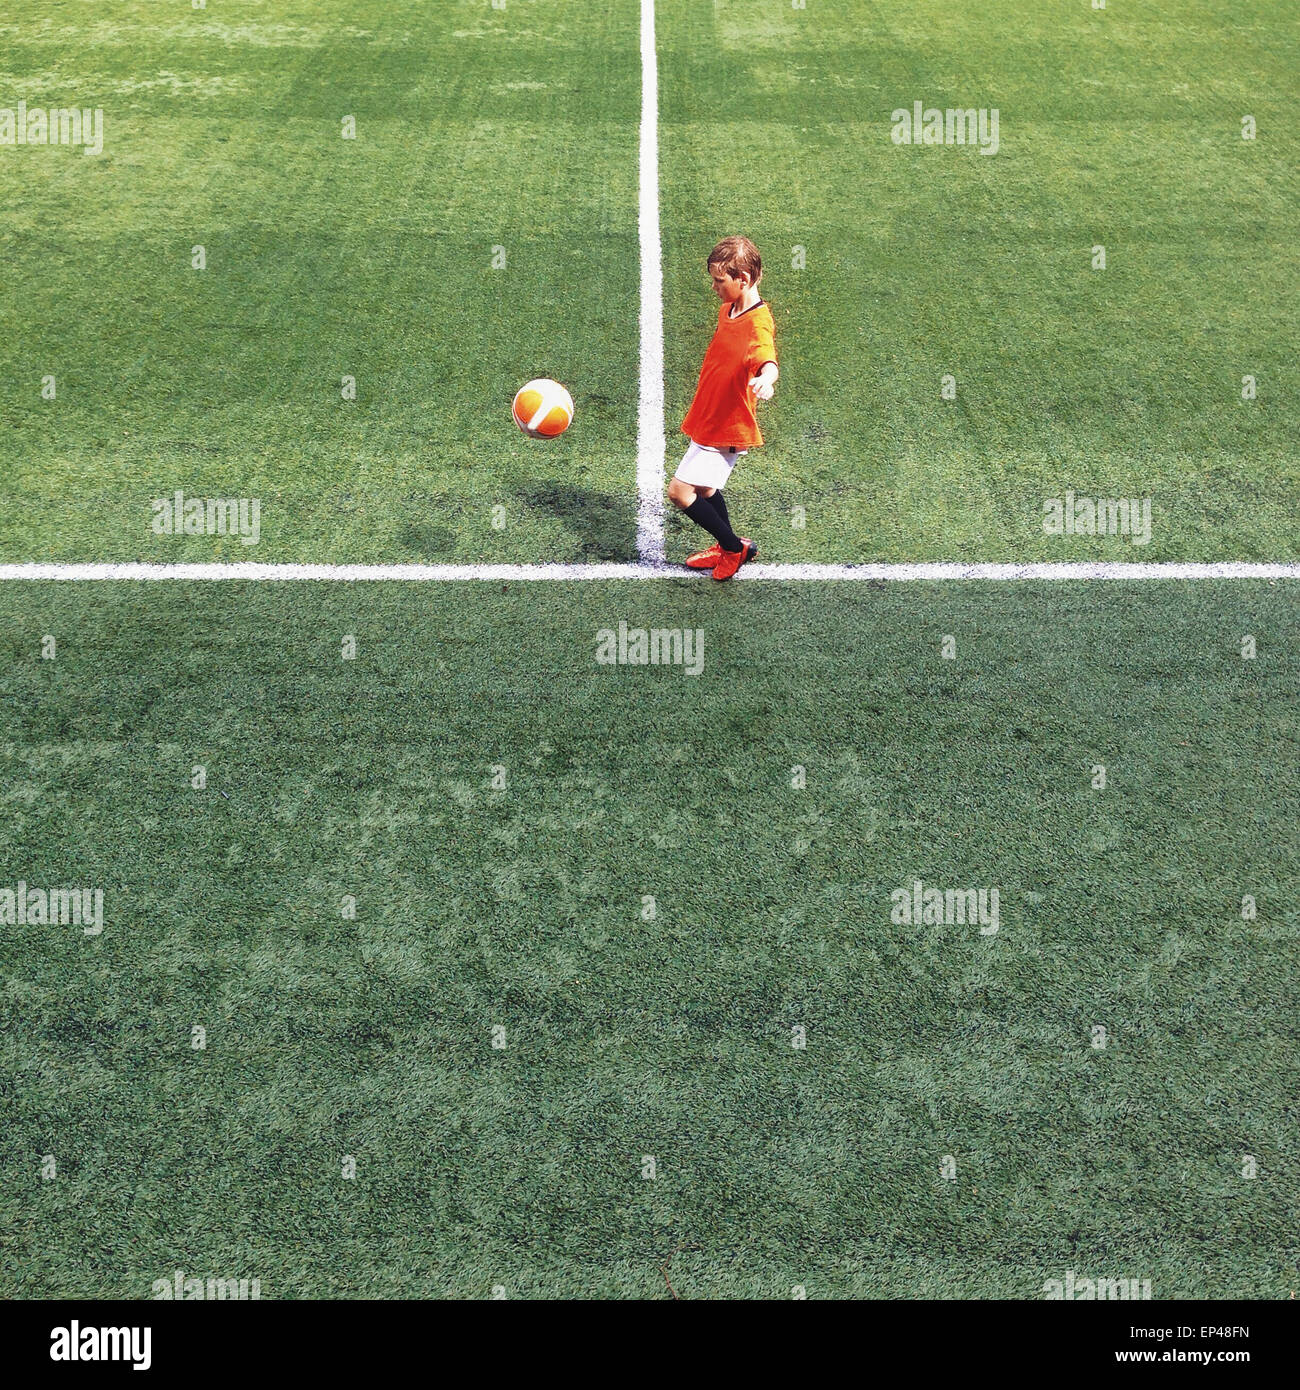 Vue latérale d'un enfant sur un terrain de football Photo Stock